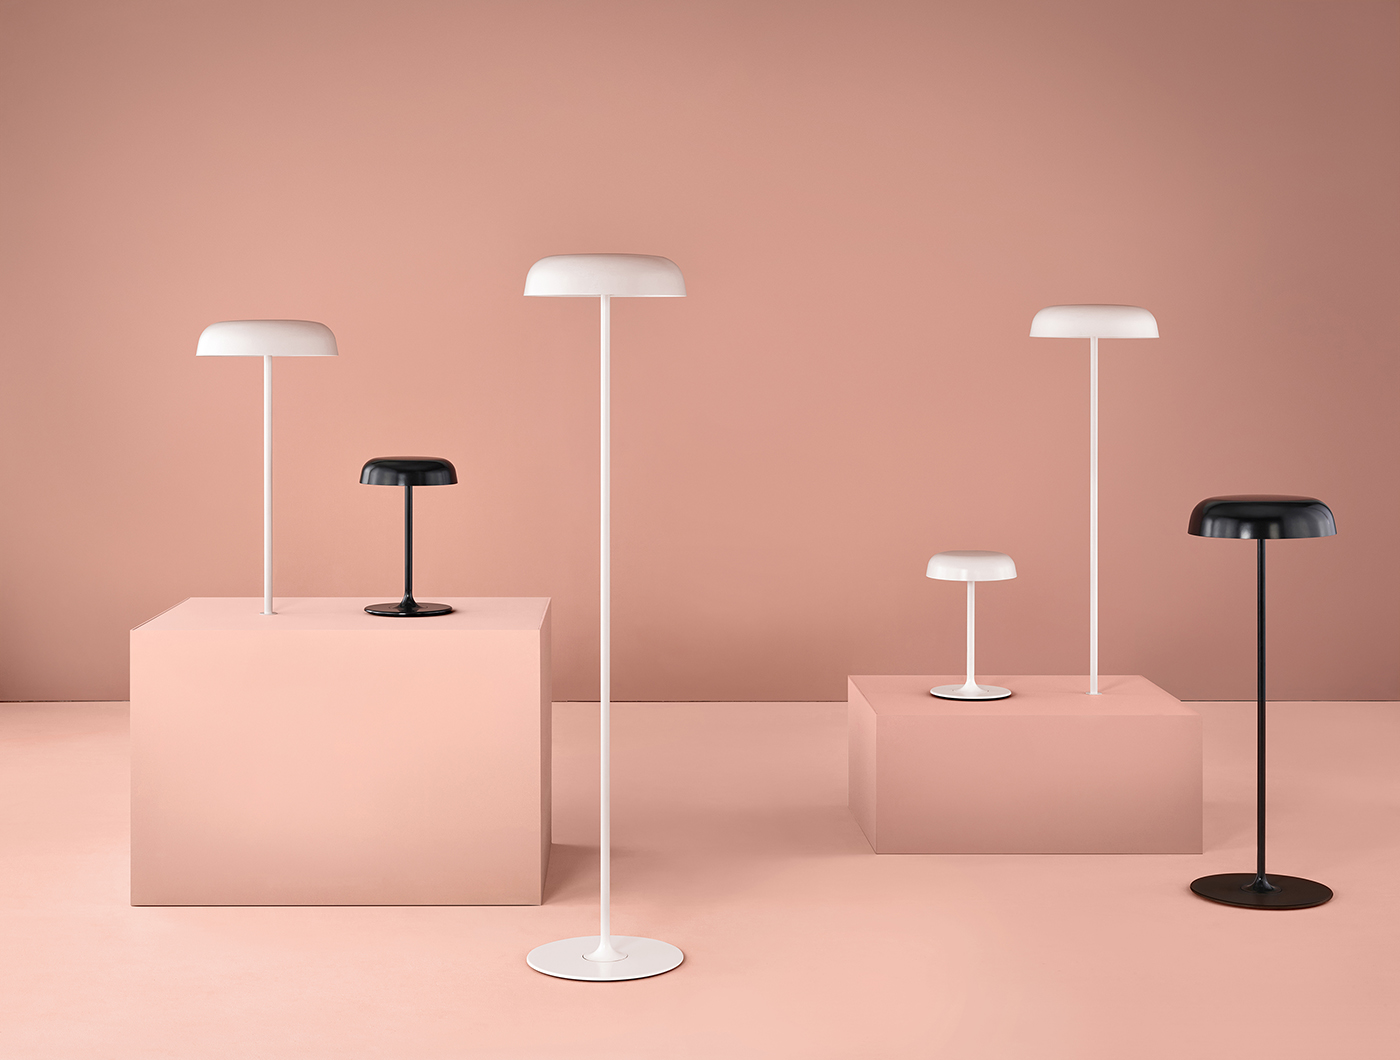 Ode Lamps in different colors and heights.